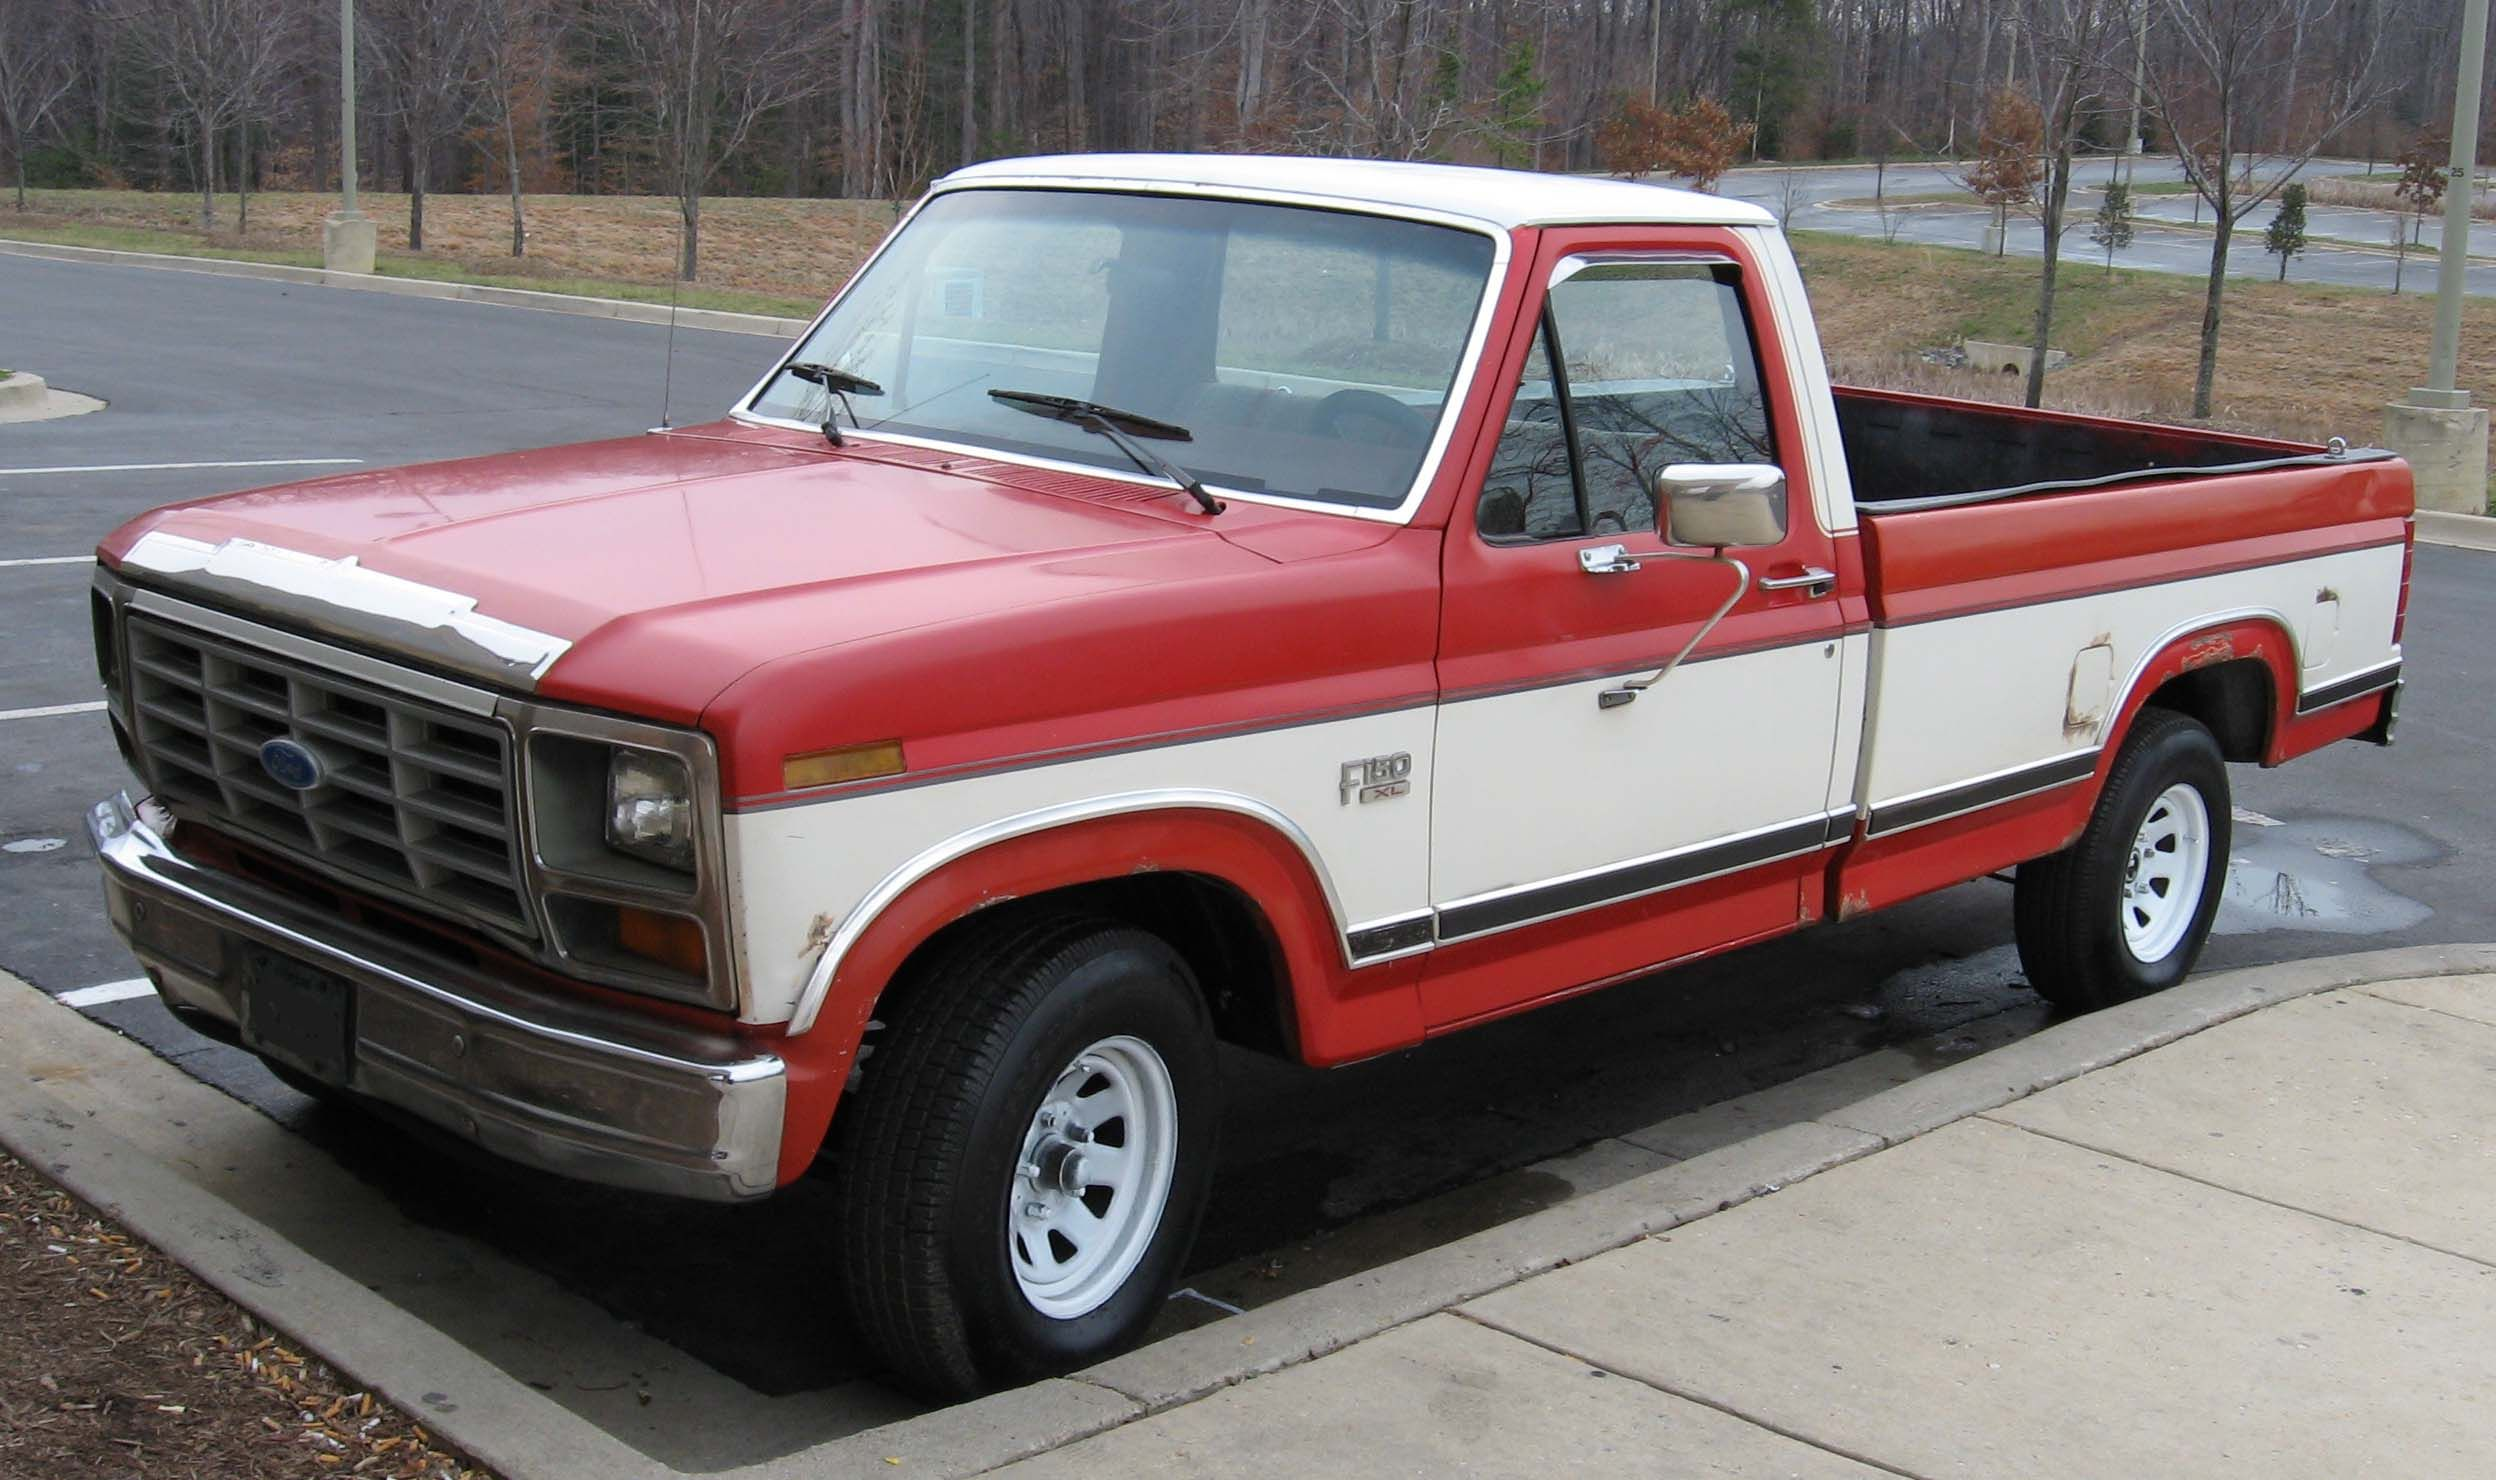 red ford f150 1980 ray pinterest ford ford trucks and cars rh pinterest com Ford F-150 Ford F 150 Lightning Specs